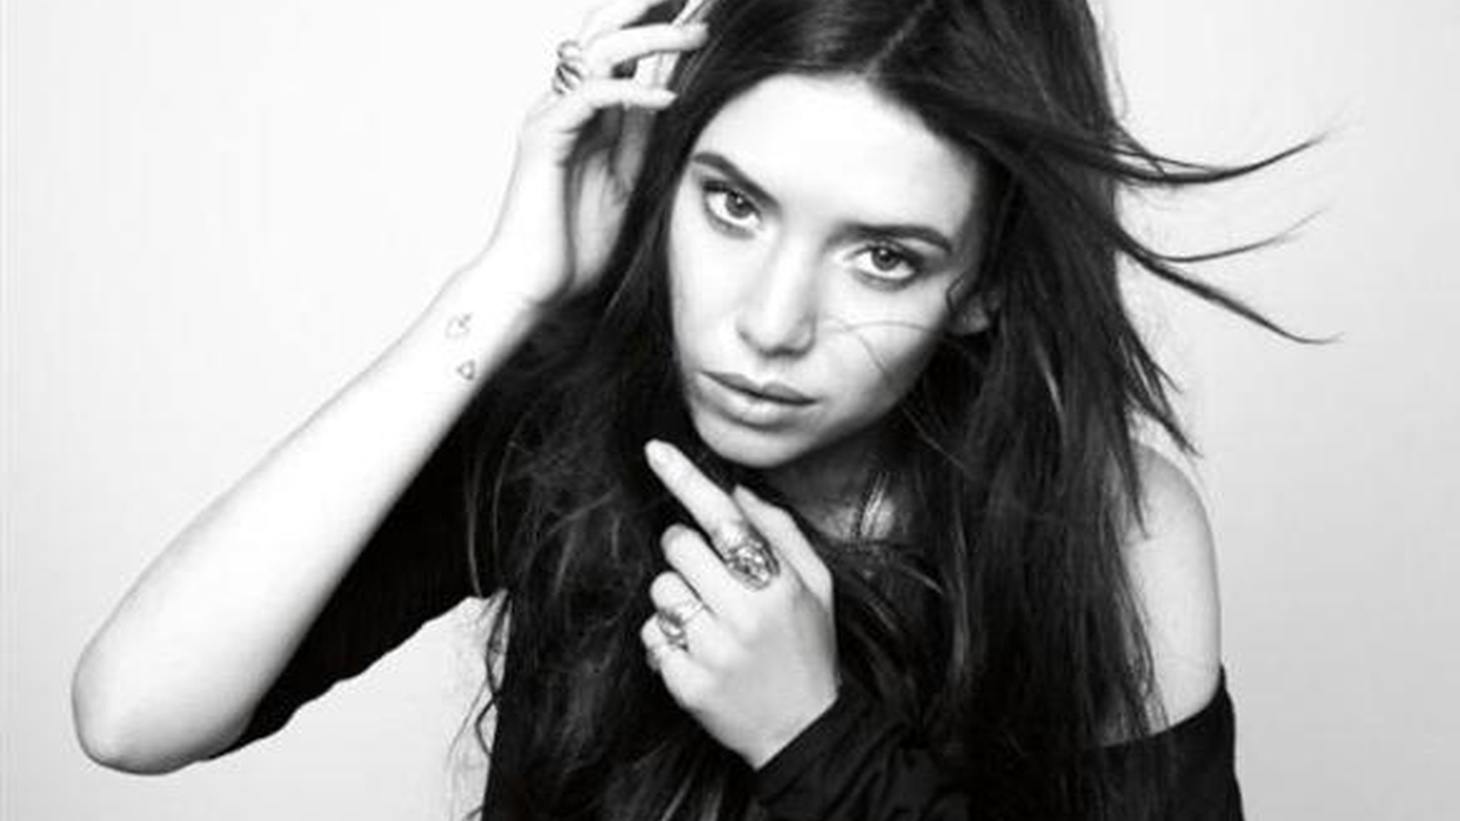 Swedish singer Lykke Li crafts perfect pop songs and each track she's revealed from her new album is better than the last. Lykke will perform new songs from that highly anticipated new record, Wounded Rhymes,  live on Morning Becomes Eclectic at 11:15am.